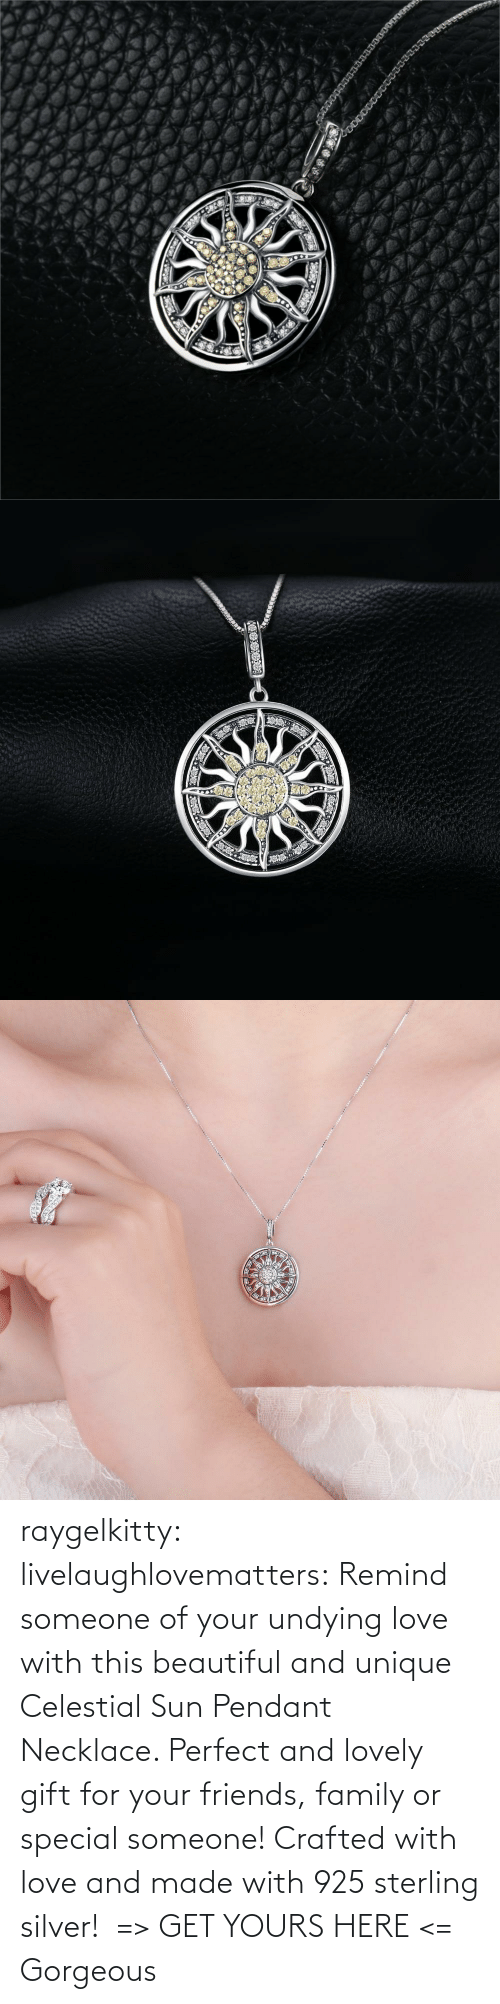 Gorgeous: raygelkitty:  livelaughlovematters: Remind someone of your undying love with this beautiful and unique Celestial Sun Pendant Necklace. Perfect and lovely gift for your friends, family or special someone! Crafted with love and made with 925 sterling silver!  => GET YOURS HERE <=    Gorgeous